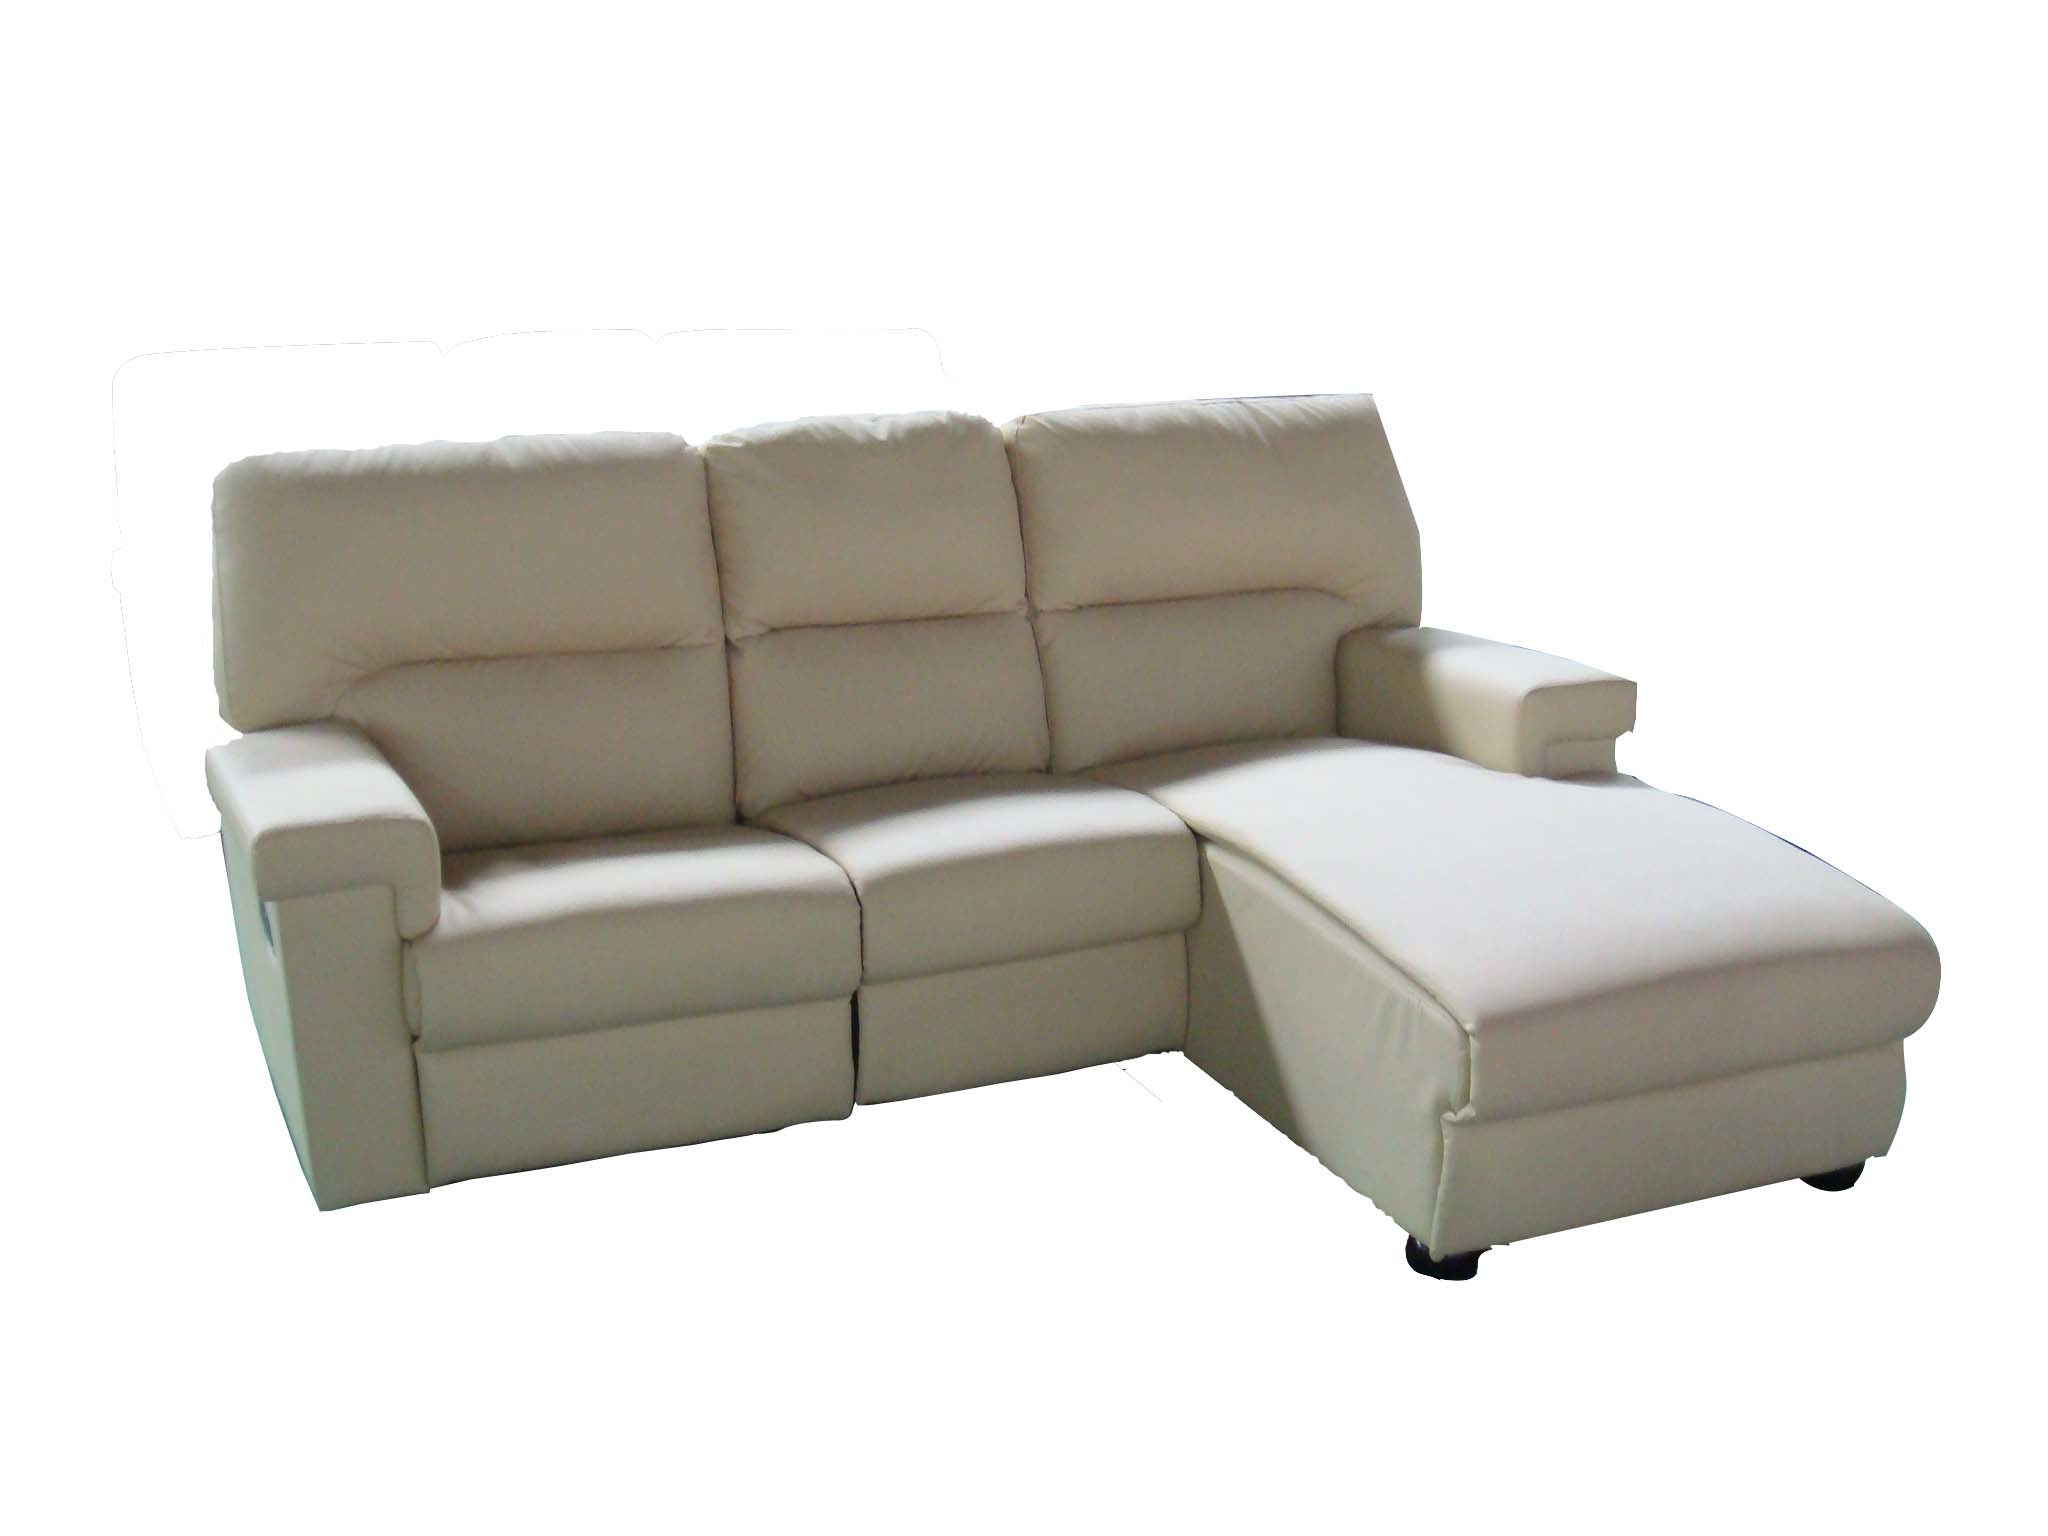 Designer Sofas Leder Contemporary Full Italian Leather